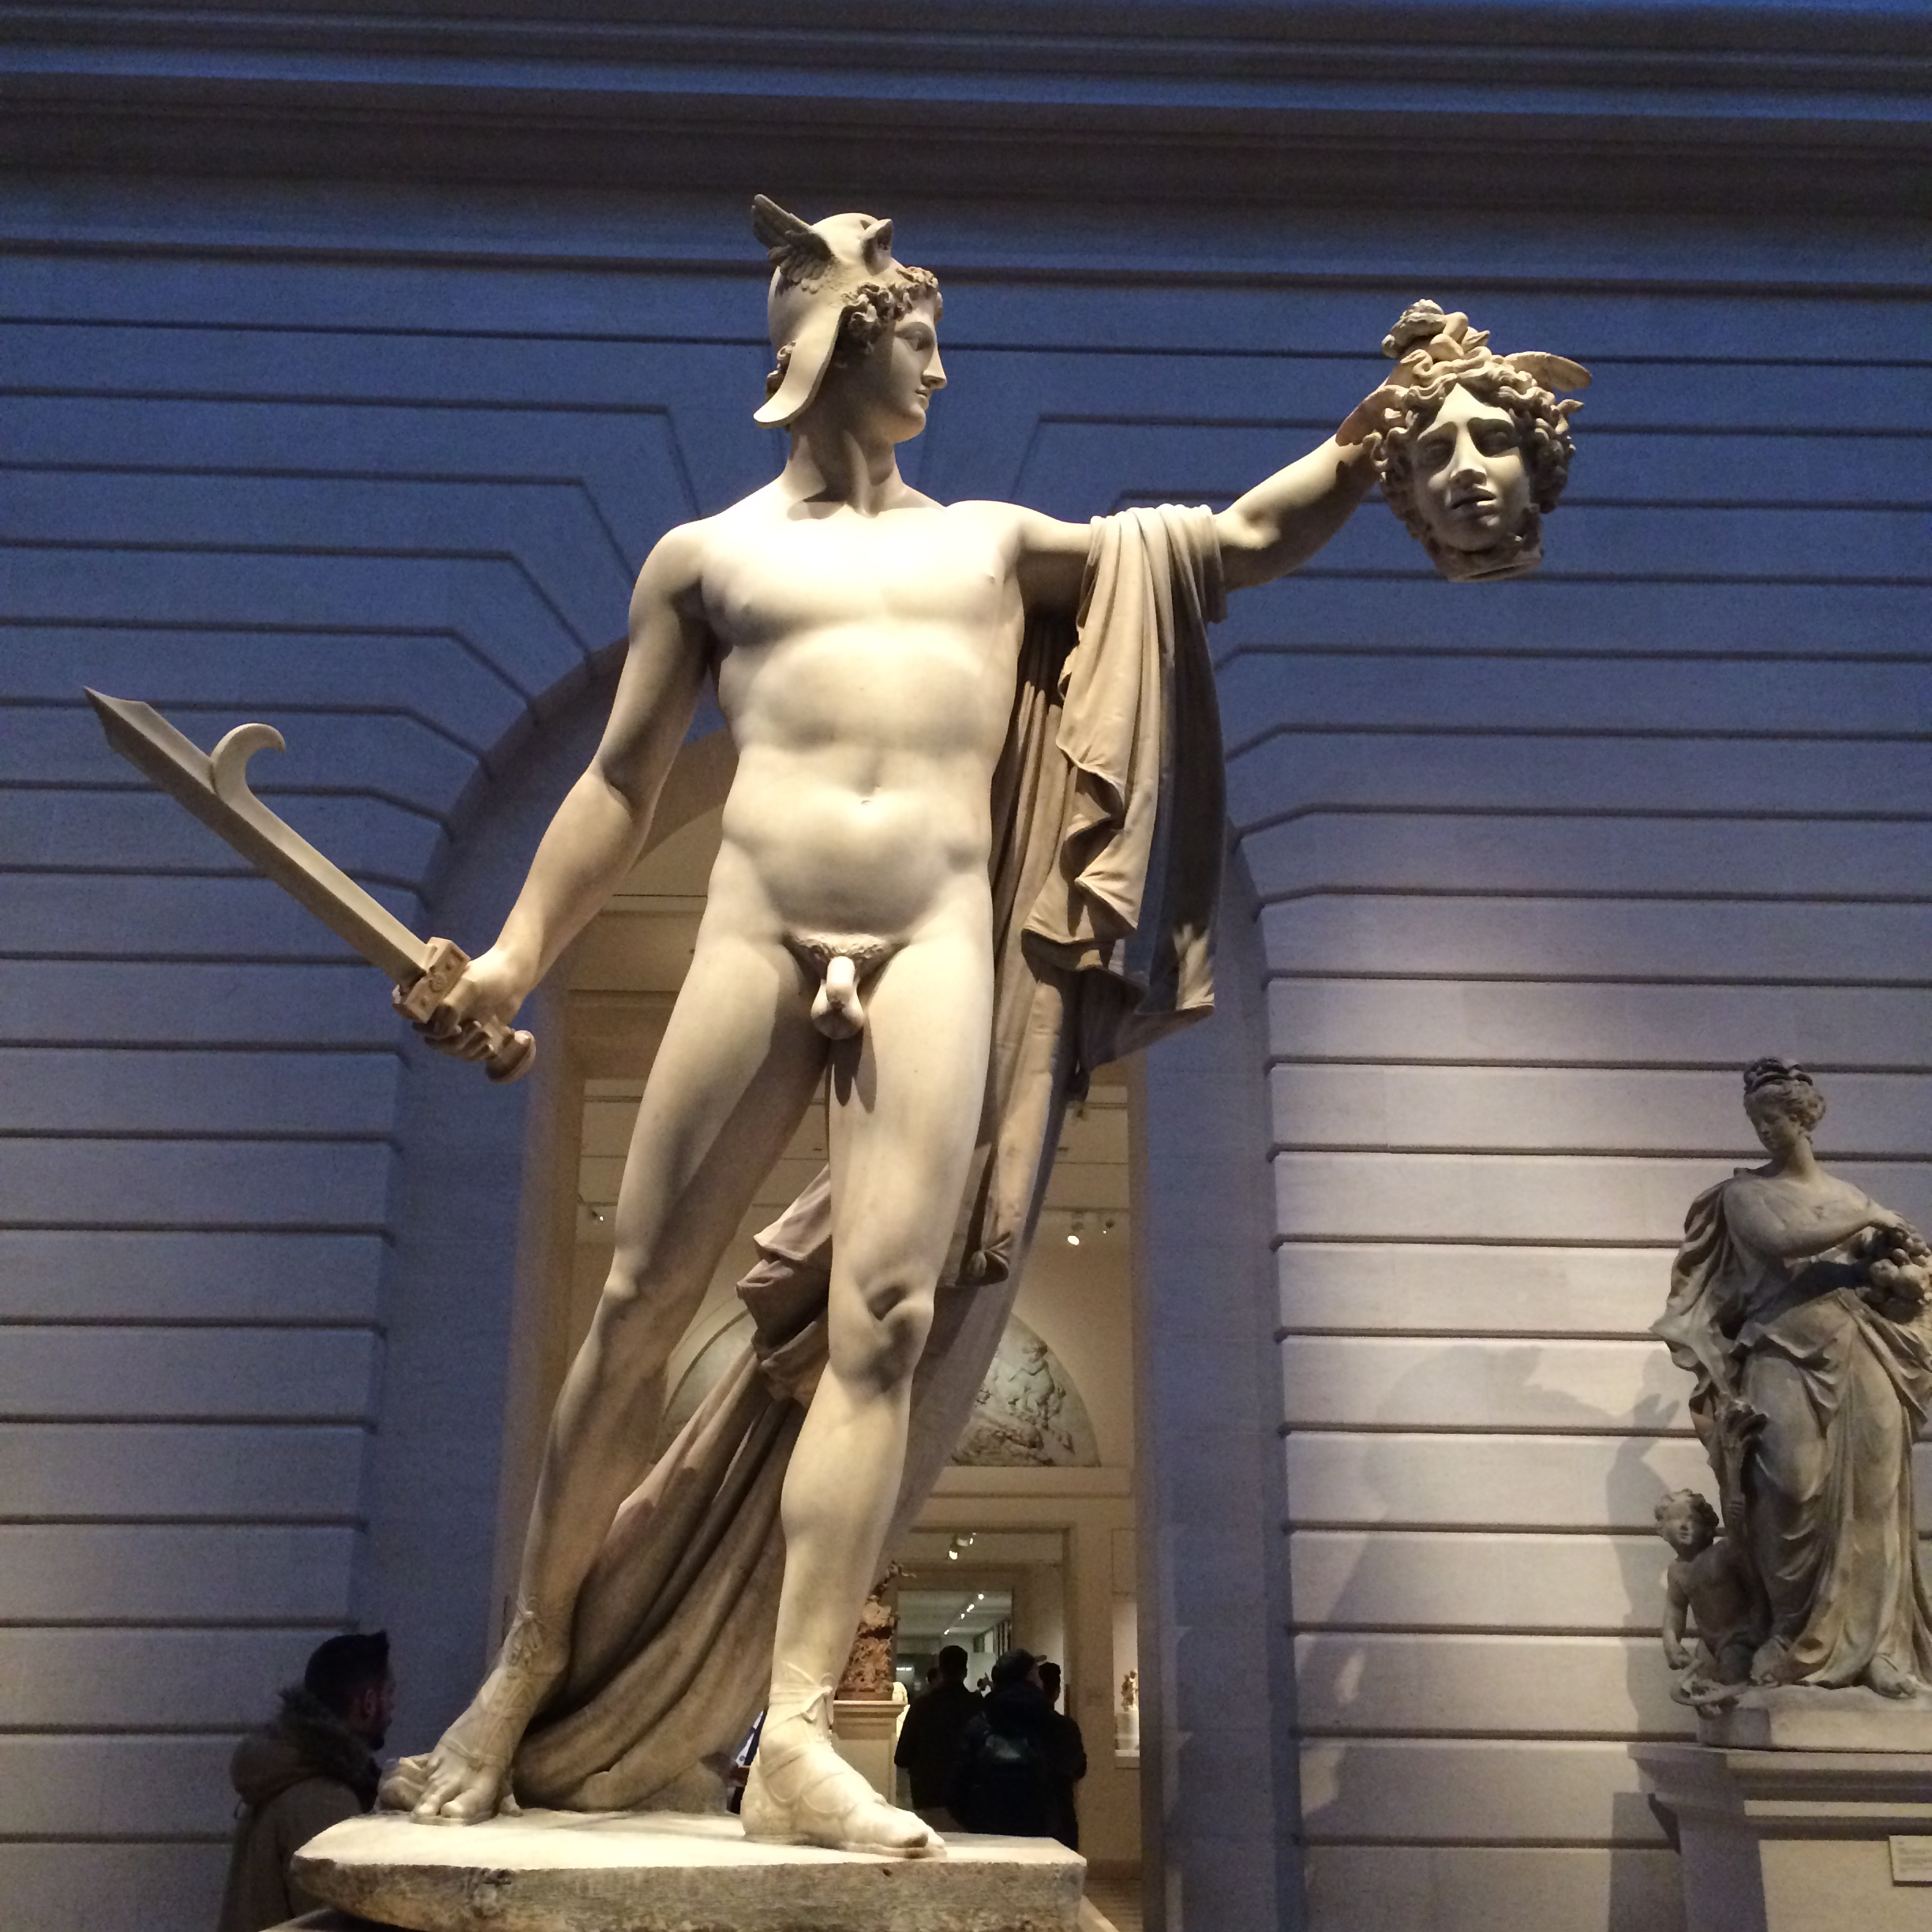 Perseus takes Medusa's head and looks so good doing it!